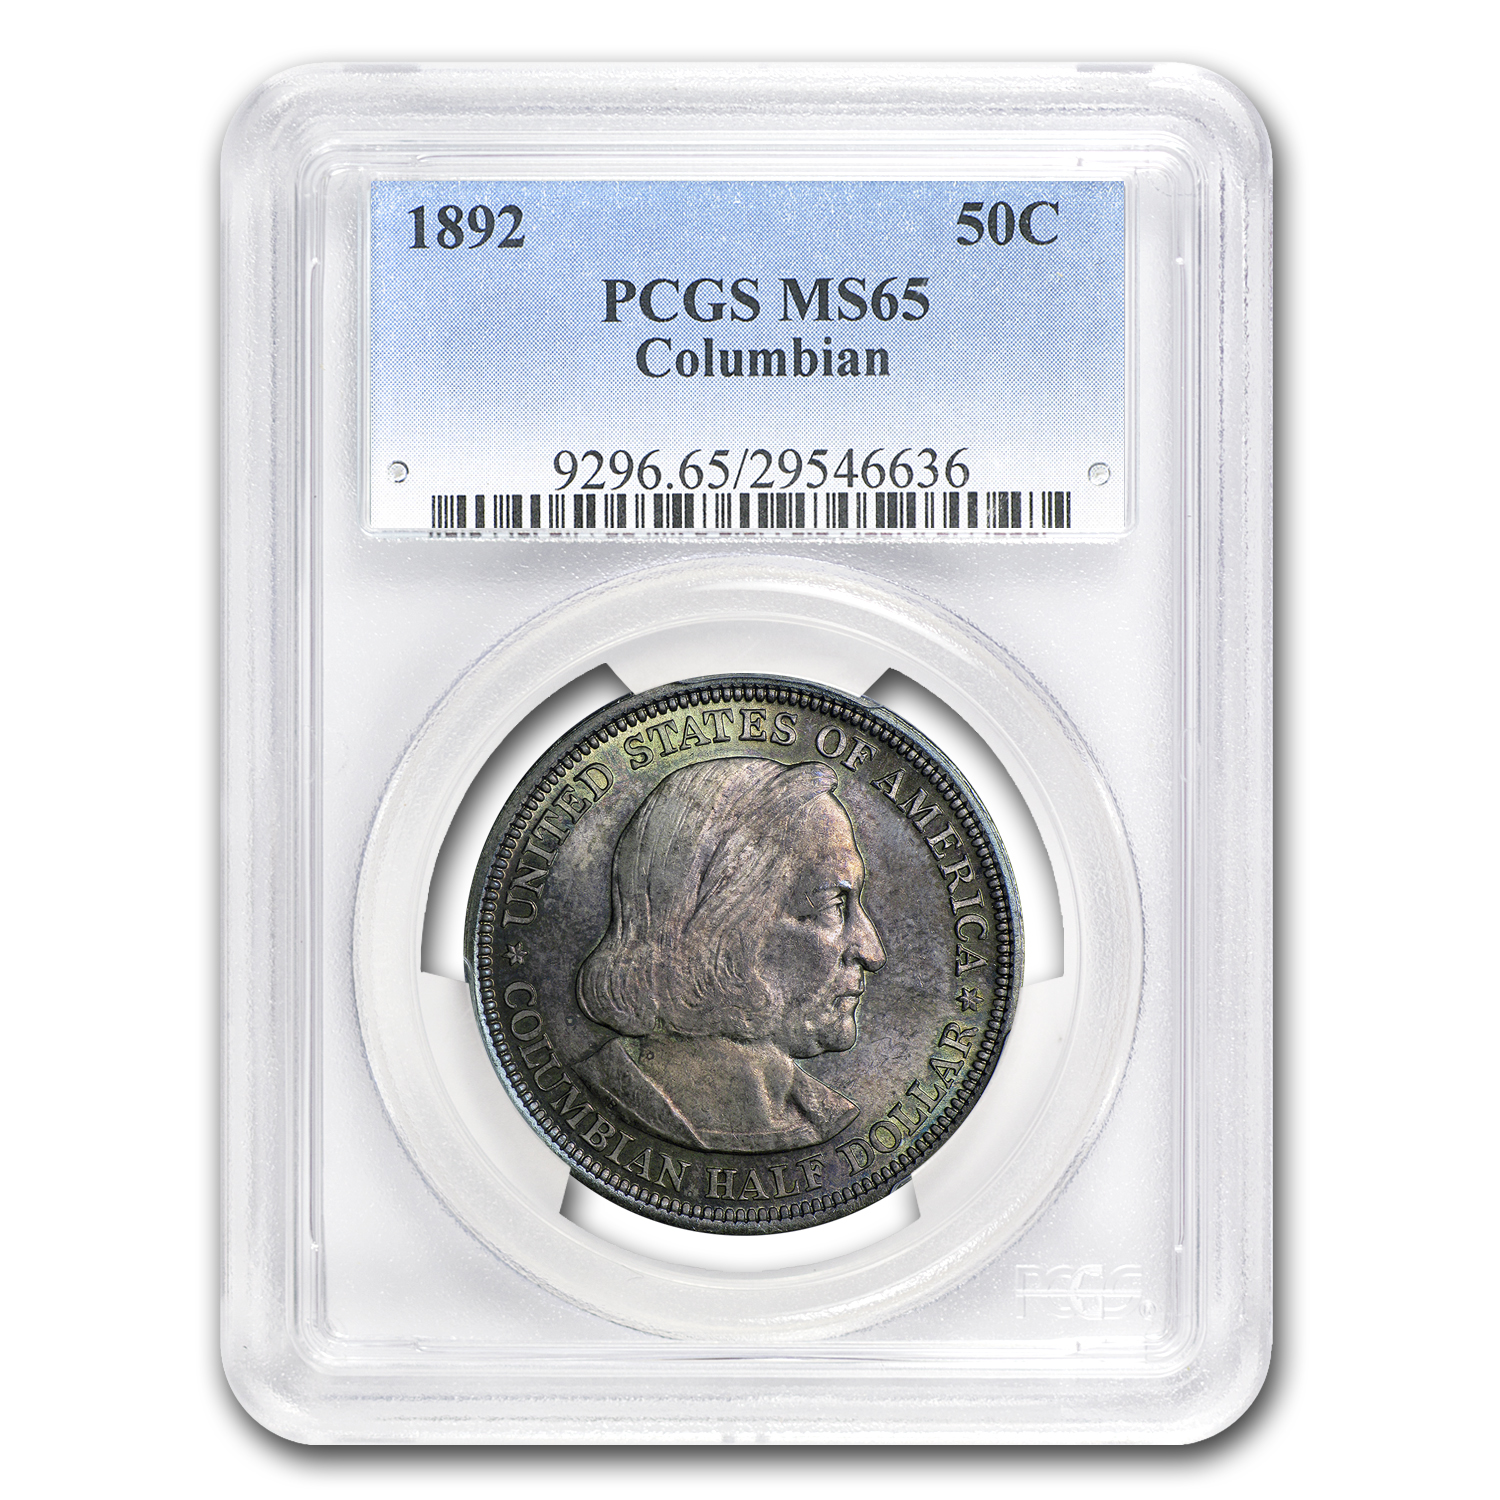 1892 Columbian MS-65 PCGS (Rainbow Toned)